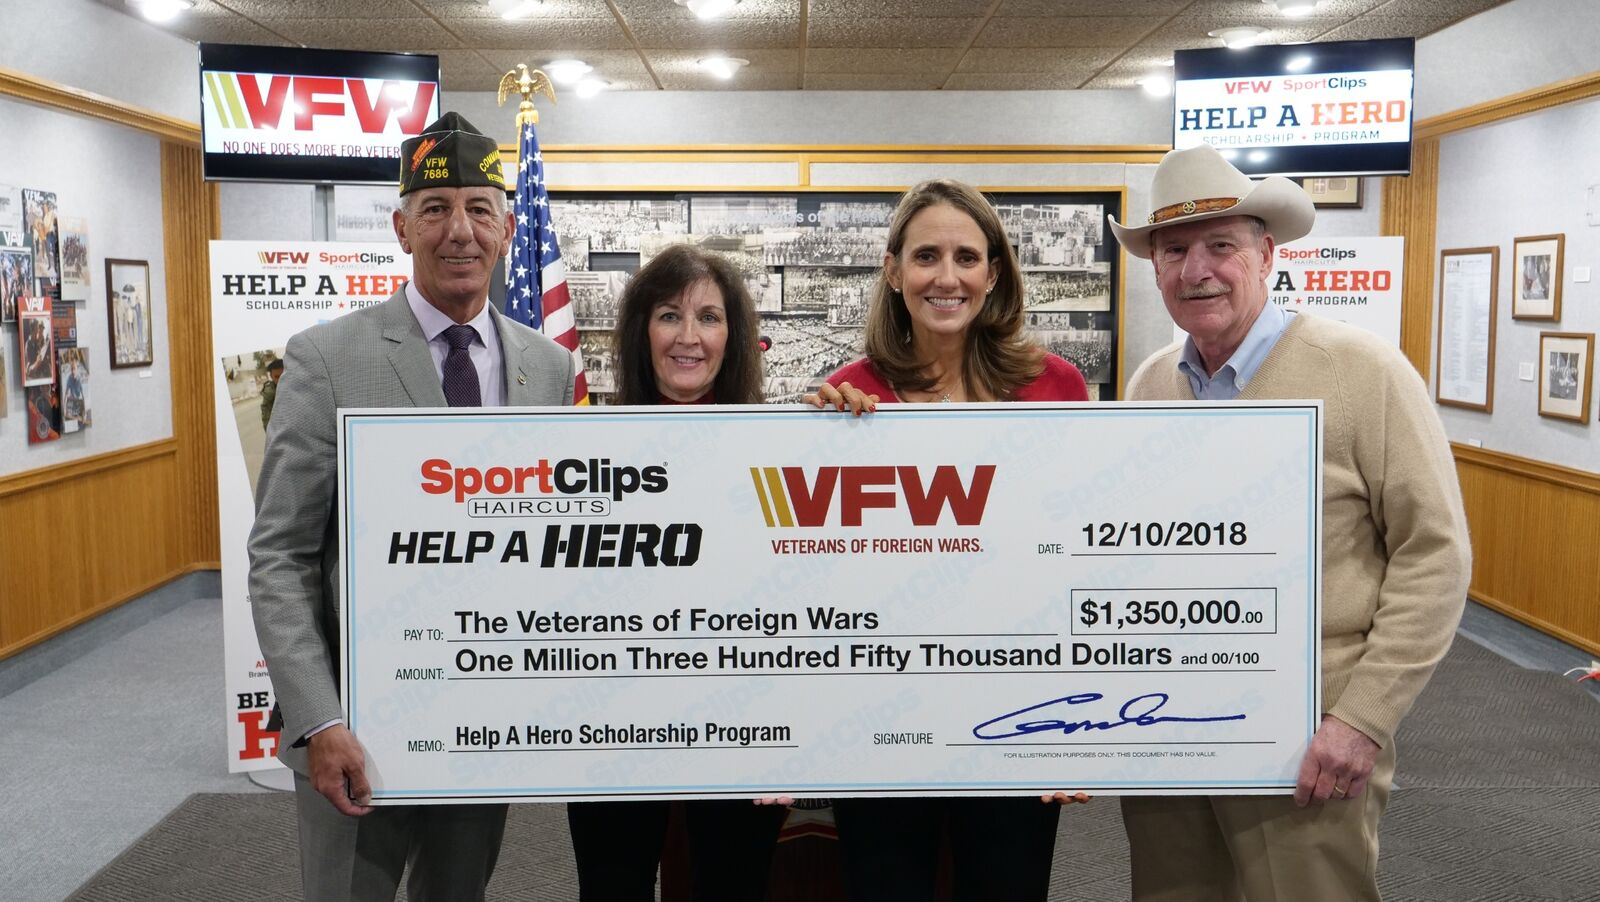 Sport Clips Haircuts just donated $1.35 million to the VFW for Help A Hero Scholarships for veterans. Pictured at the check presentation (l to r) B.J. Lawrence, VFW  Commander-in-Chief; Martha England, Sport Clips Haircuts vice president of marketing; Amanda Palm, Sport Clips Haircuts communications manager; and Gordon Logan, USAF veteran and Sport Clips Haircuts founder and CEO. Sport Clips Haircuts